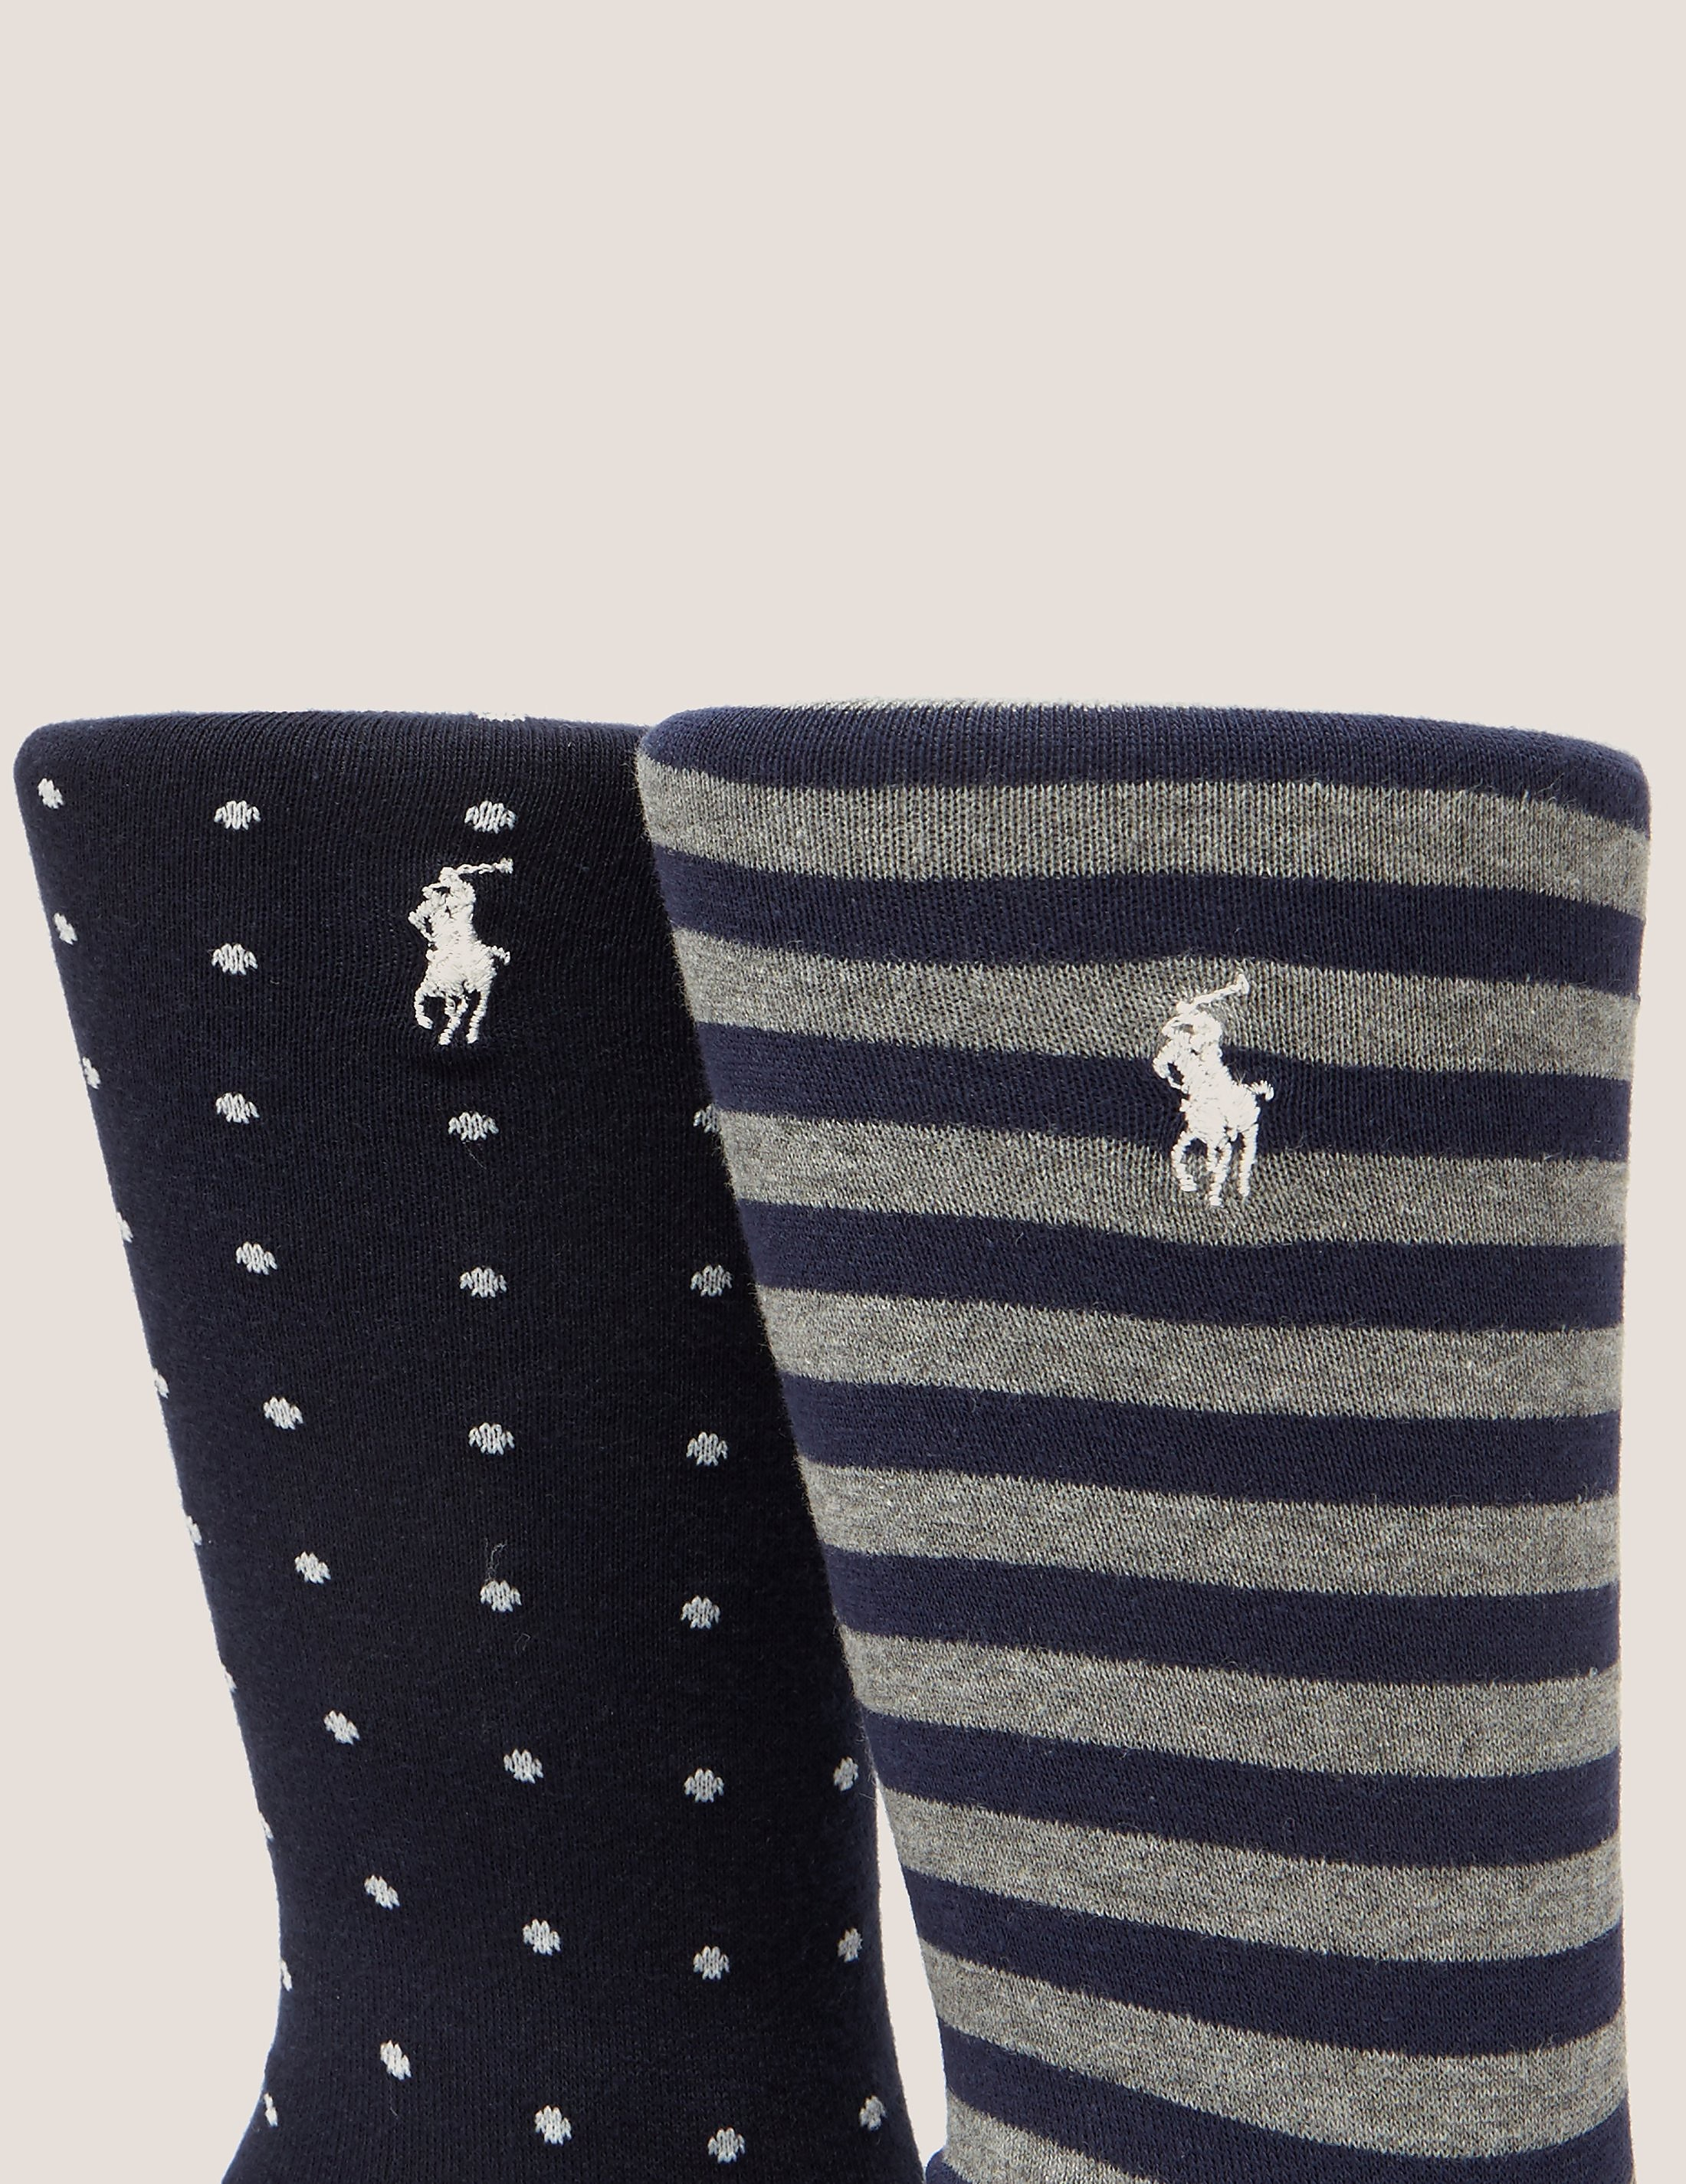 Polo Ralph Lauren 2-Pack Spot & Stripe Socks